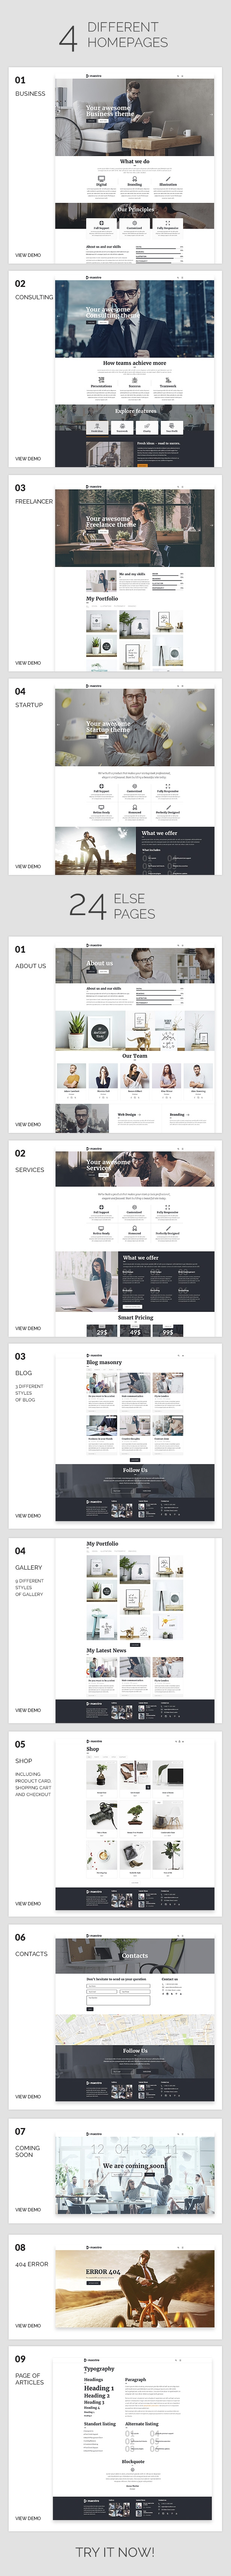 Business | Business Maestro WordPress for Business - 5